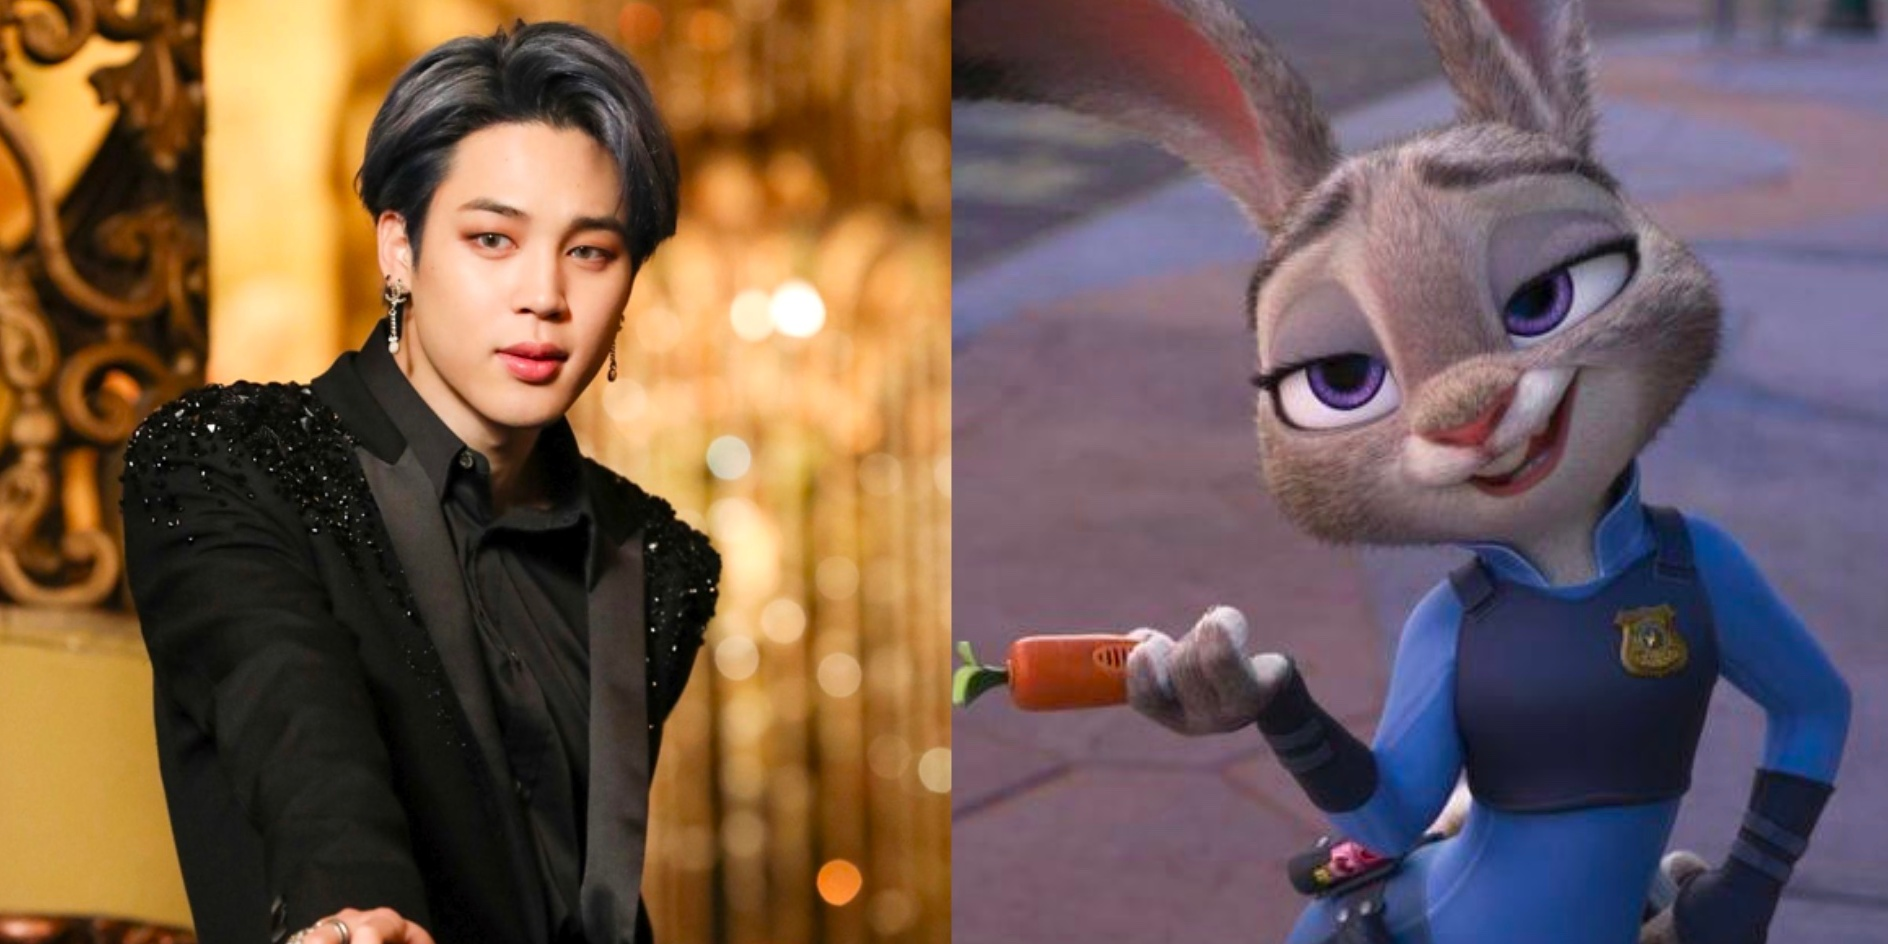 """""""When can we...work together?!"""": Zootopia's co-director Jared Bush on BTS Jimin's impressive dubbing of Judy"""